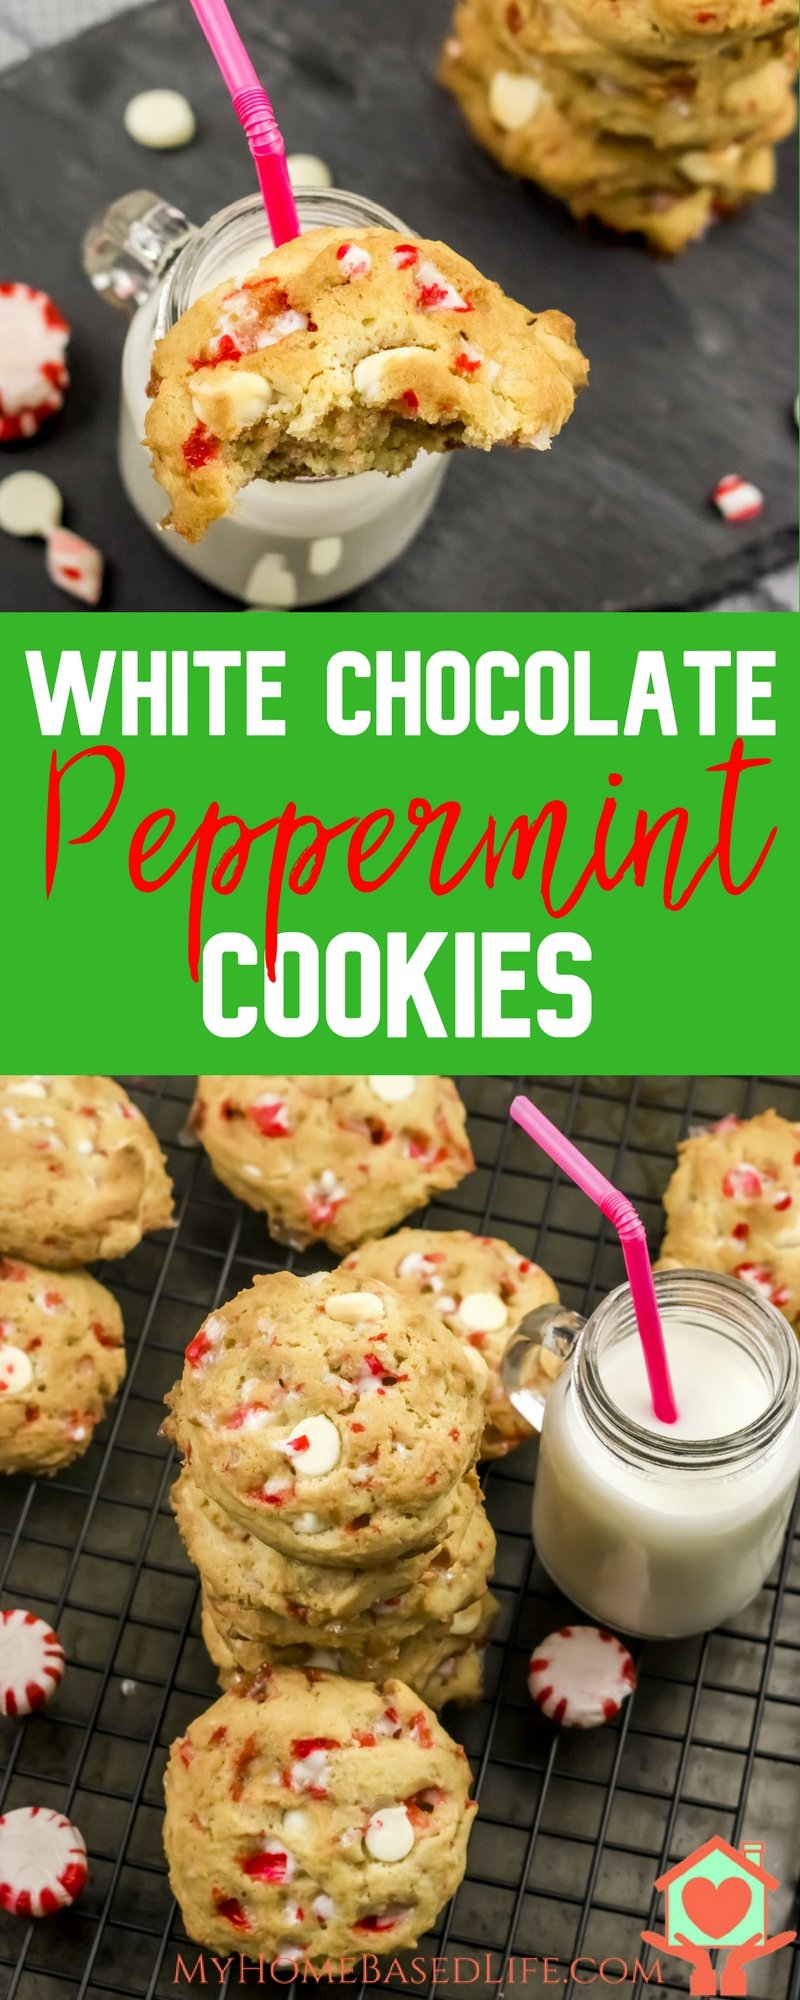 White Chocolate Peppermint Cookies | Cooke Recipe | Christmas Cookie Recipe | Peppermint Cookies | Cookie Exchange Cookies | Christmas Dessert | Peppermint Dessert | #cookieexchange #christmasrecipe